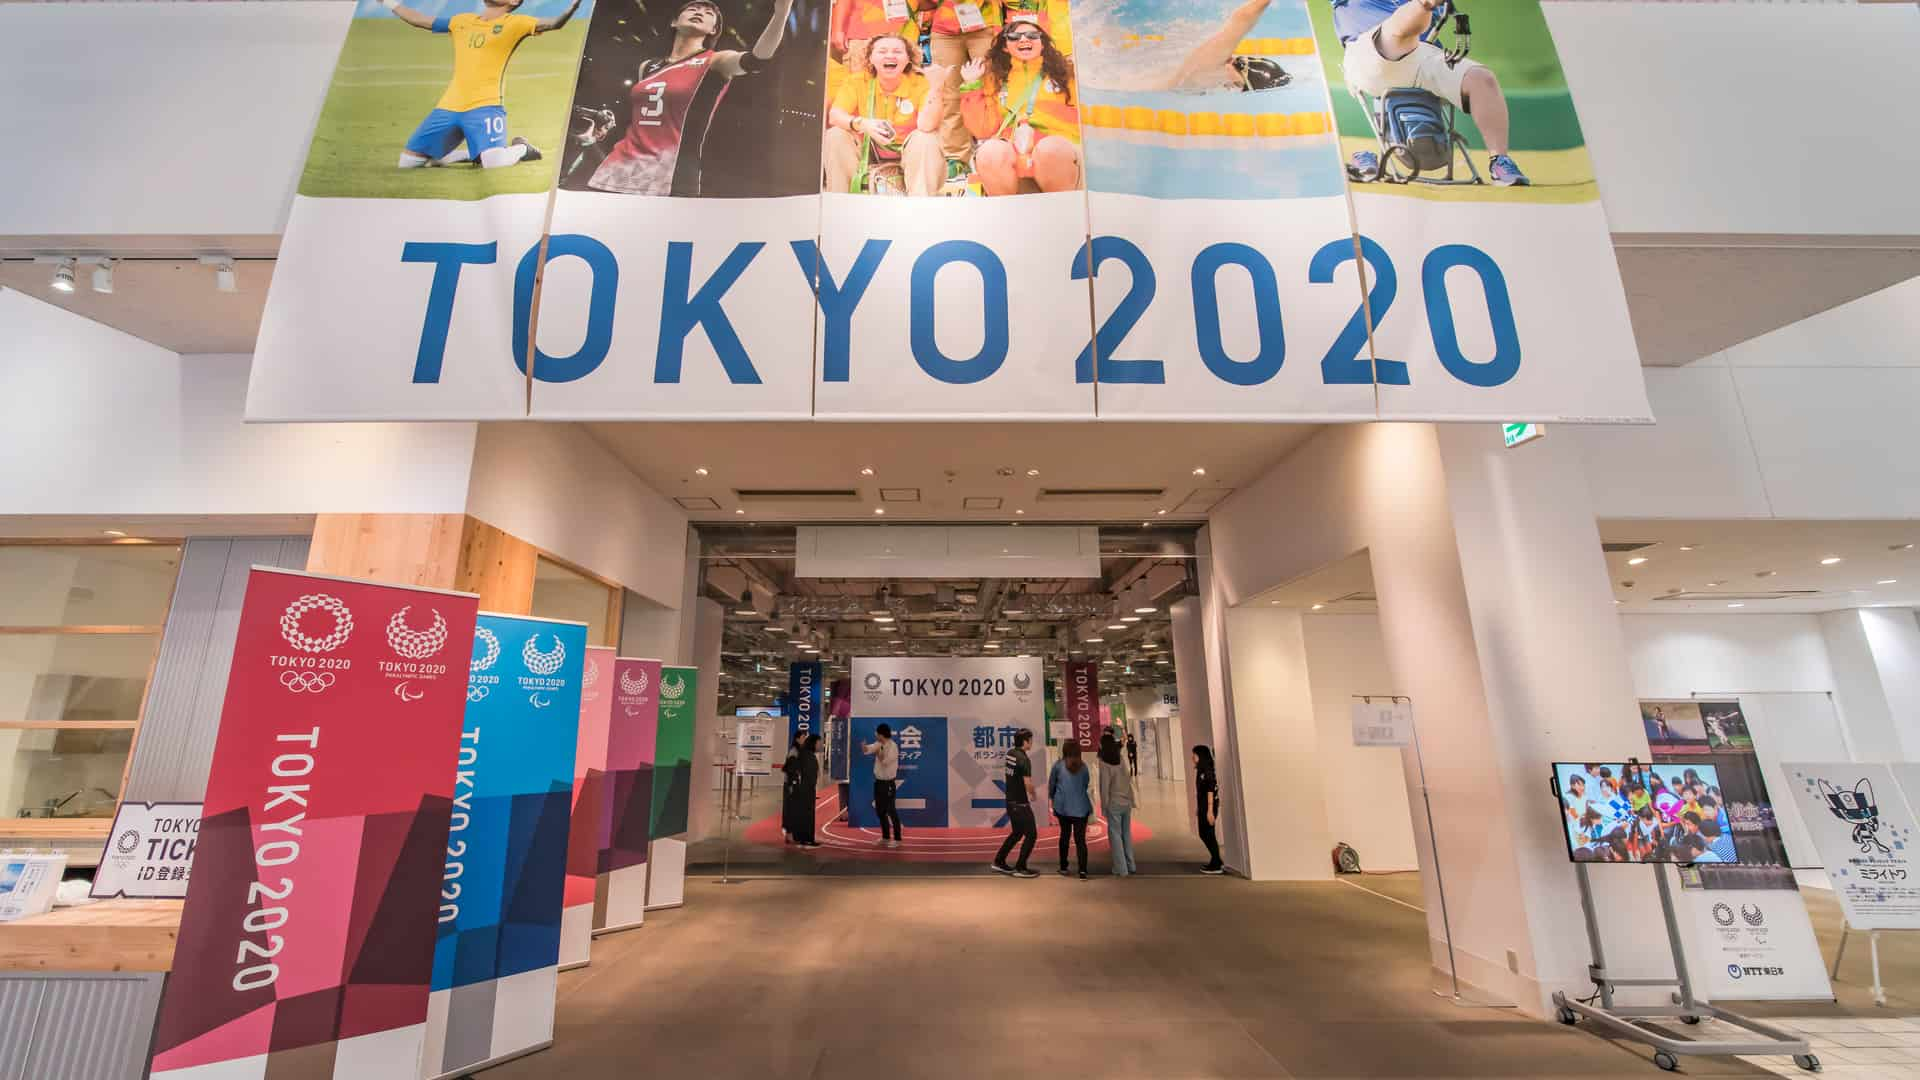 Promotional event of Tokyo 2020 Summer Olympics Games